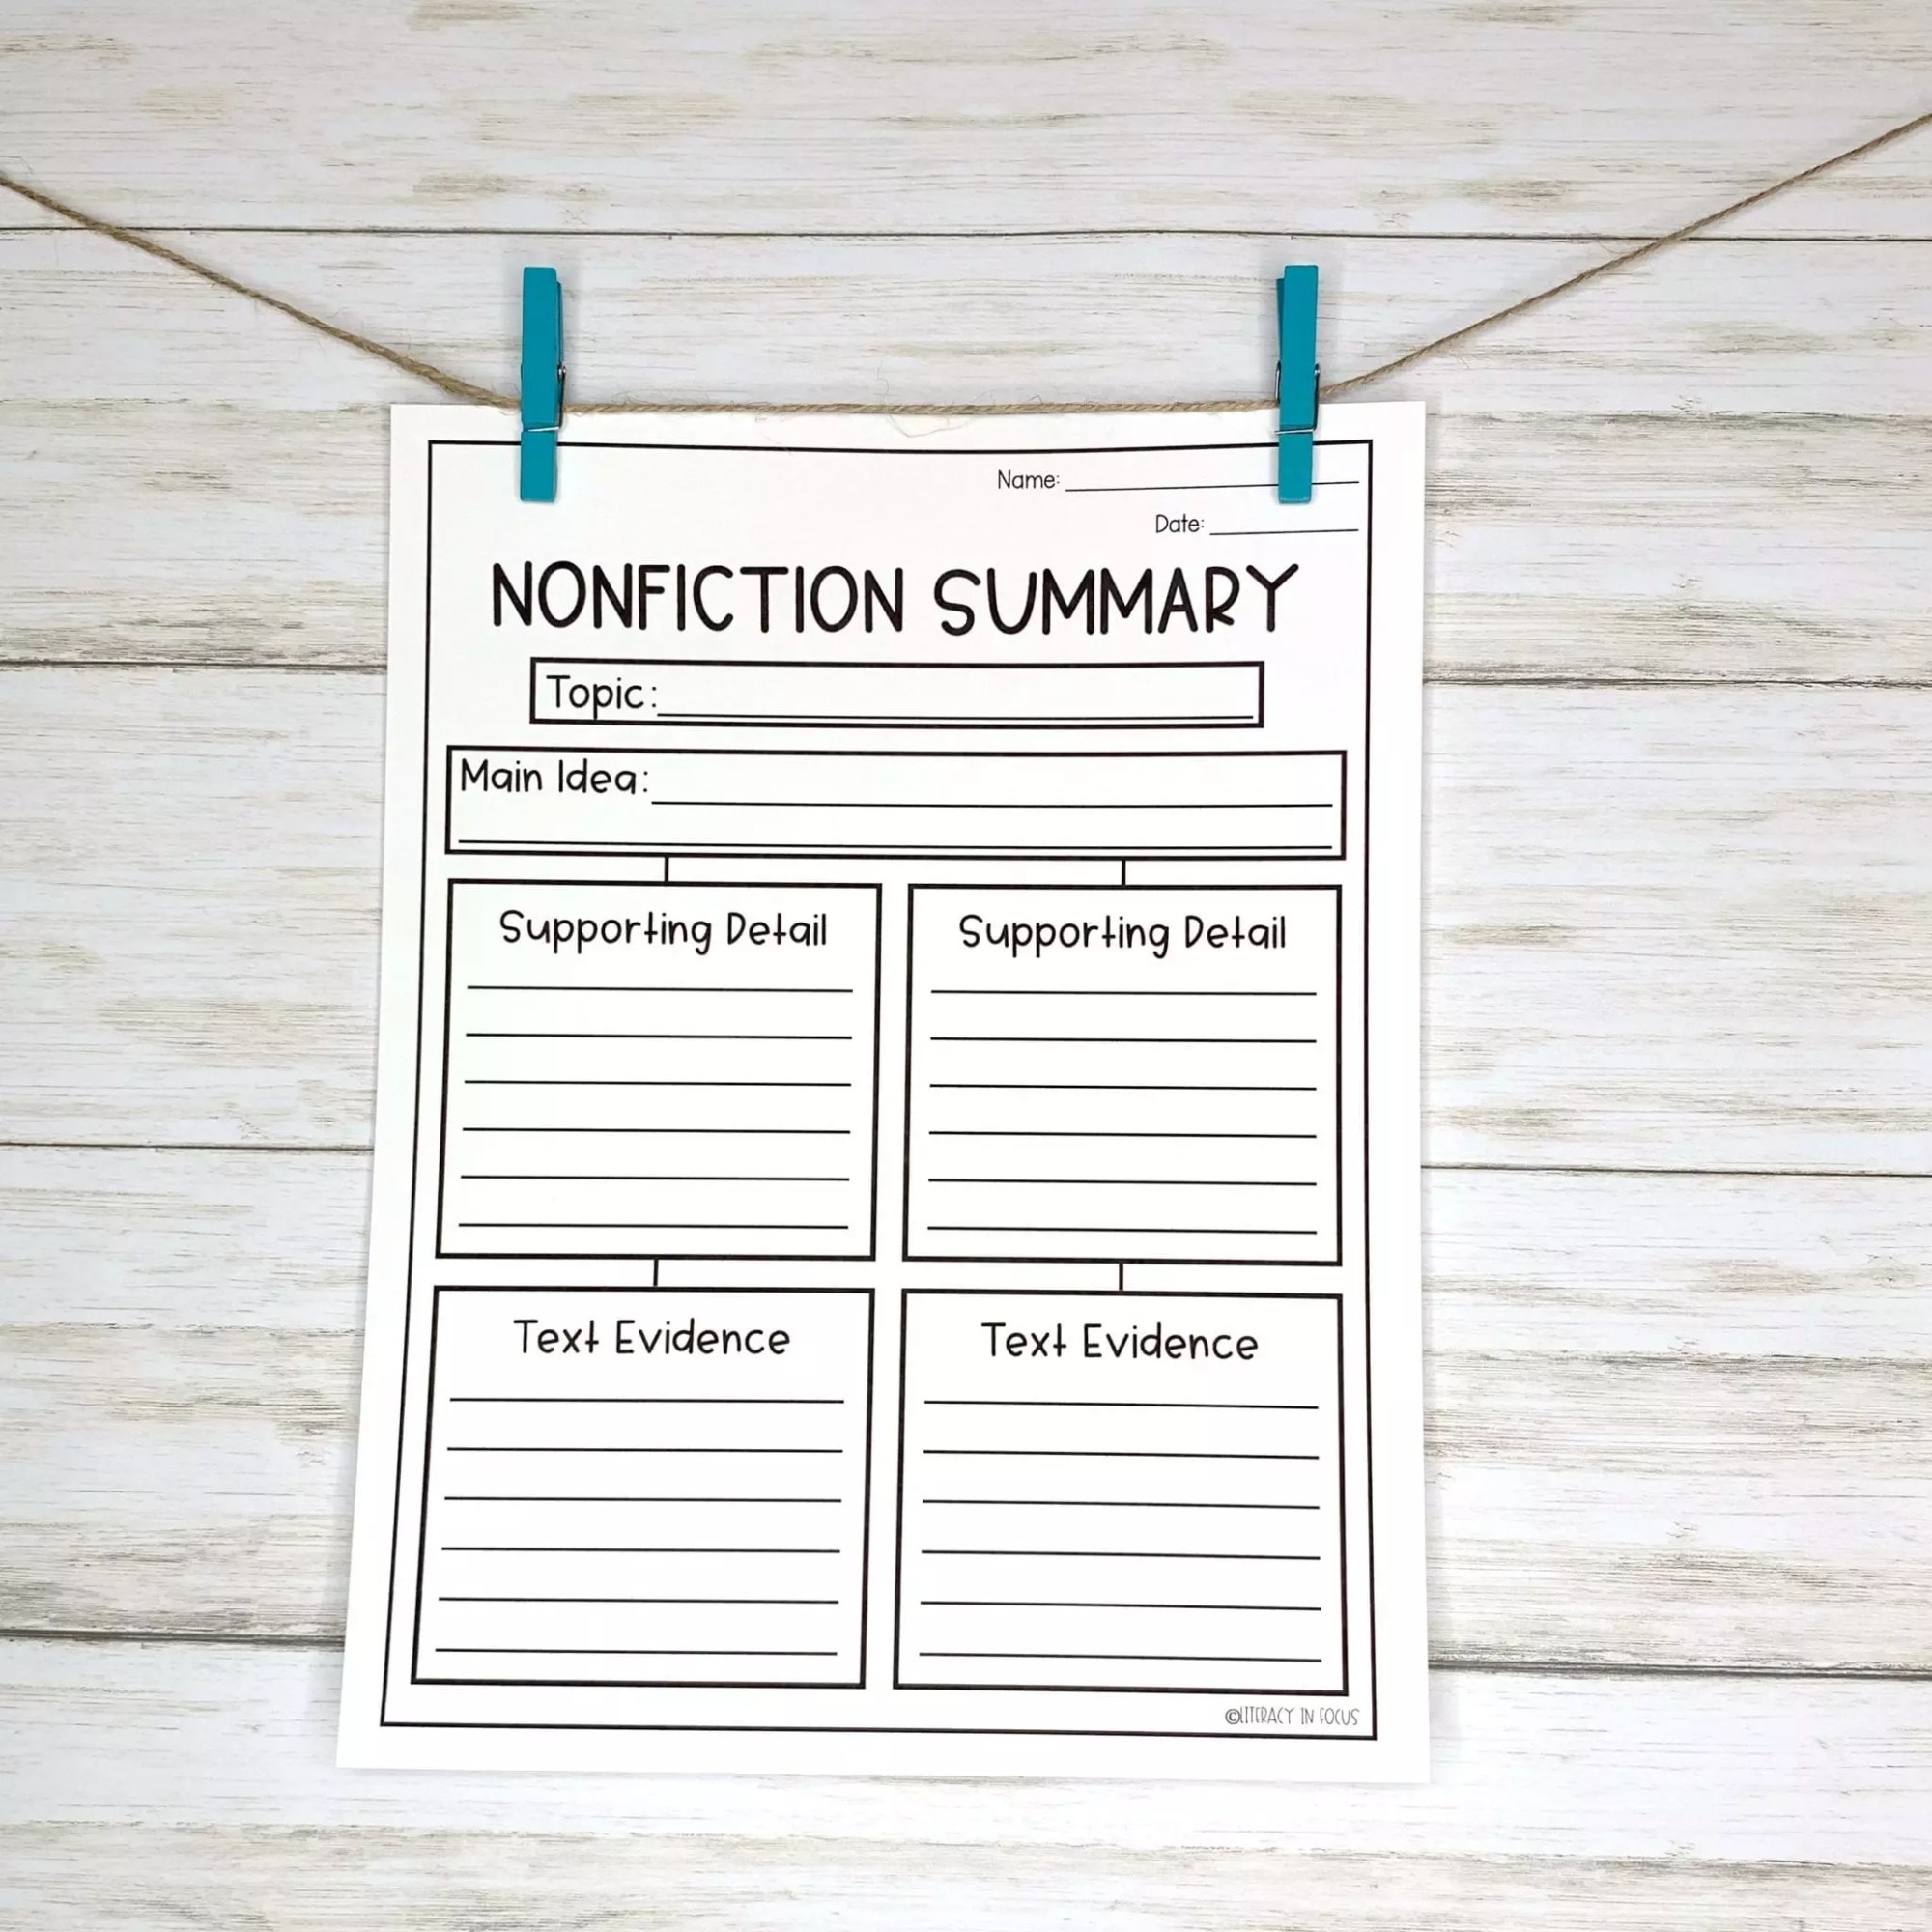 hight resolution of 10 Graphic Organizers for Summary Writing   Literacy In Focus